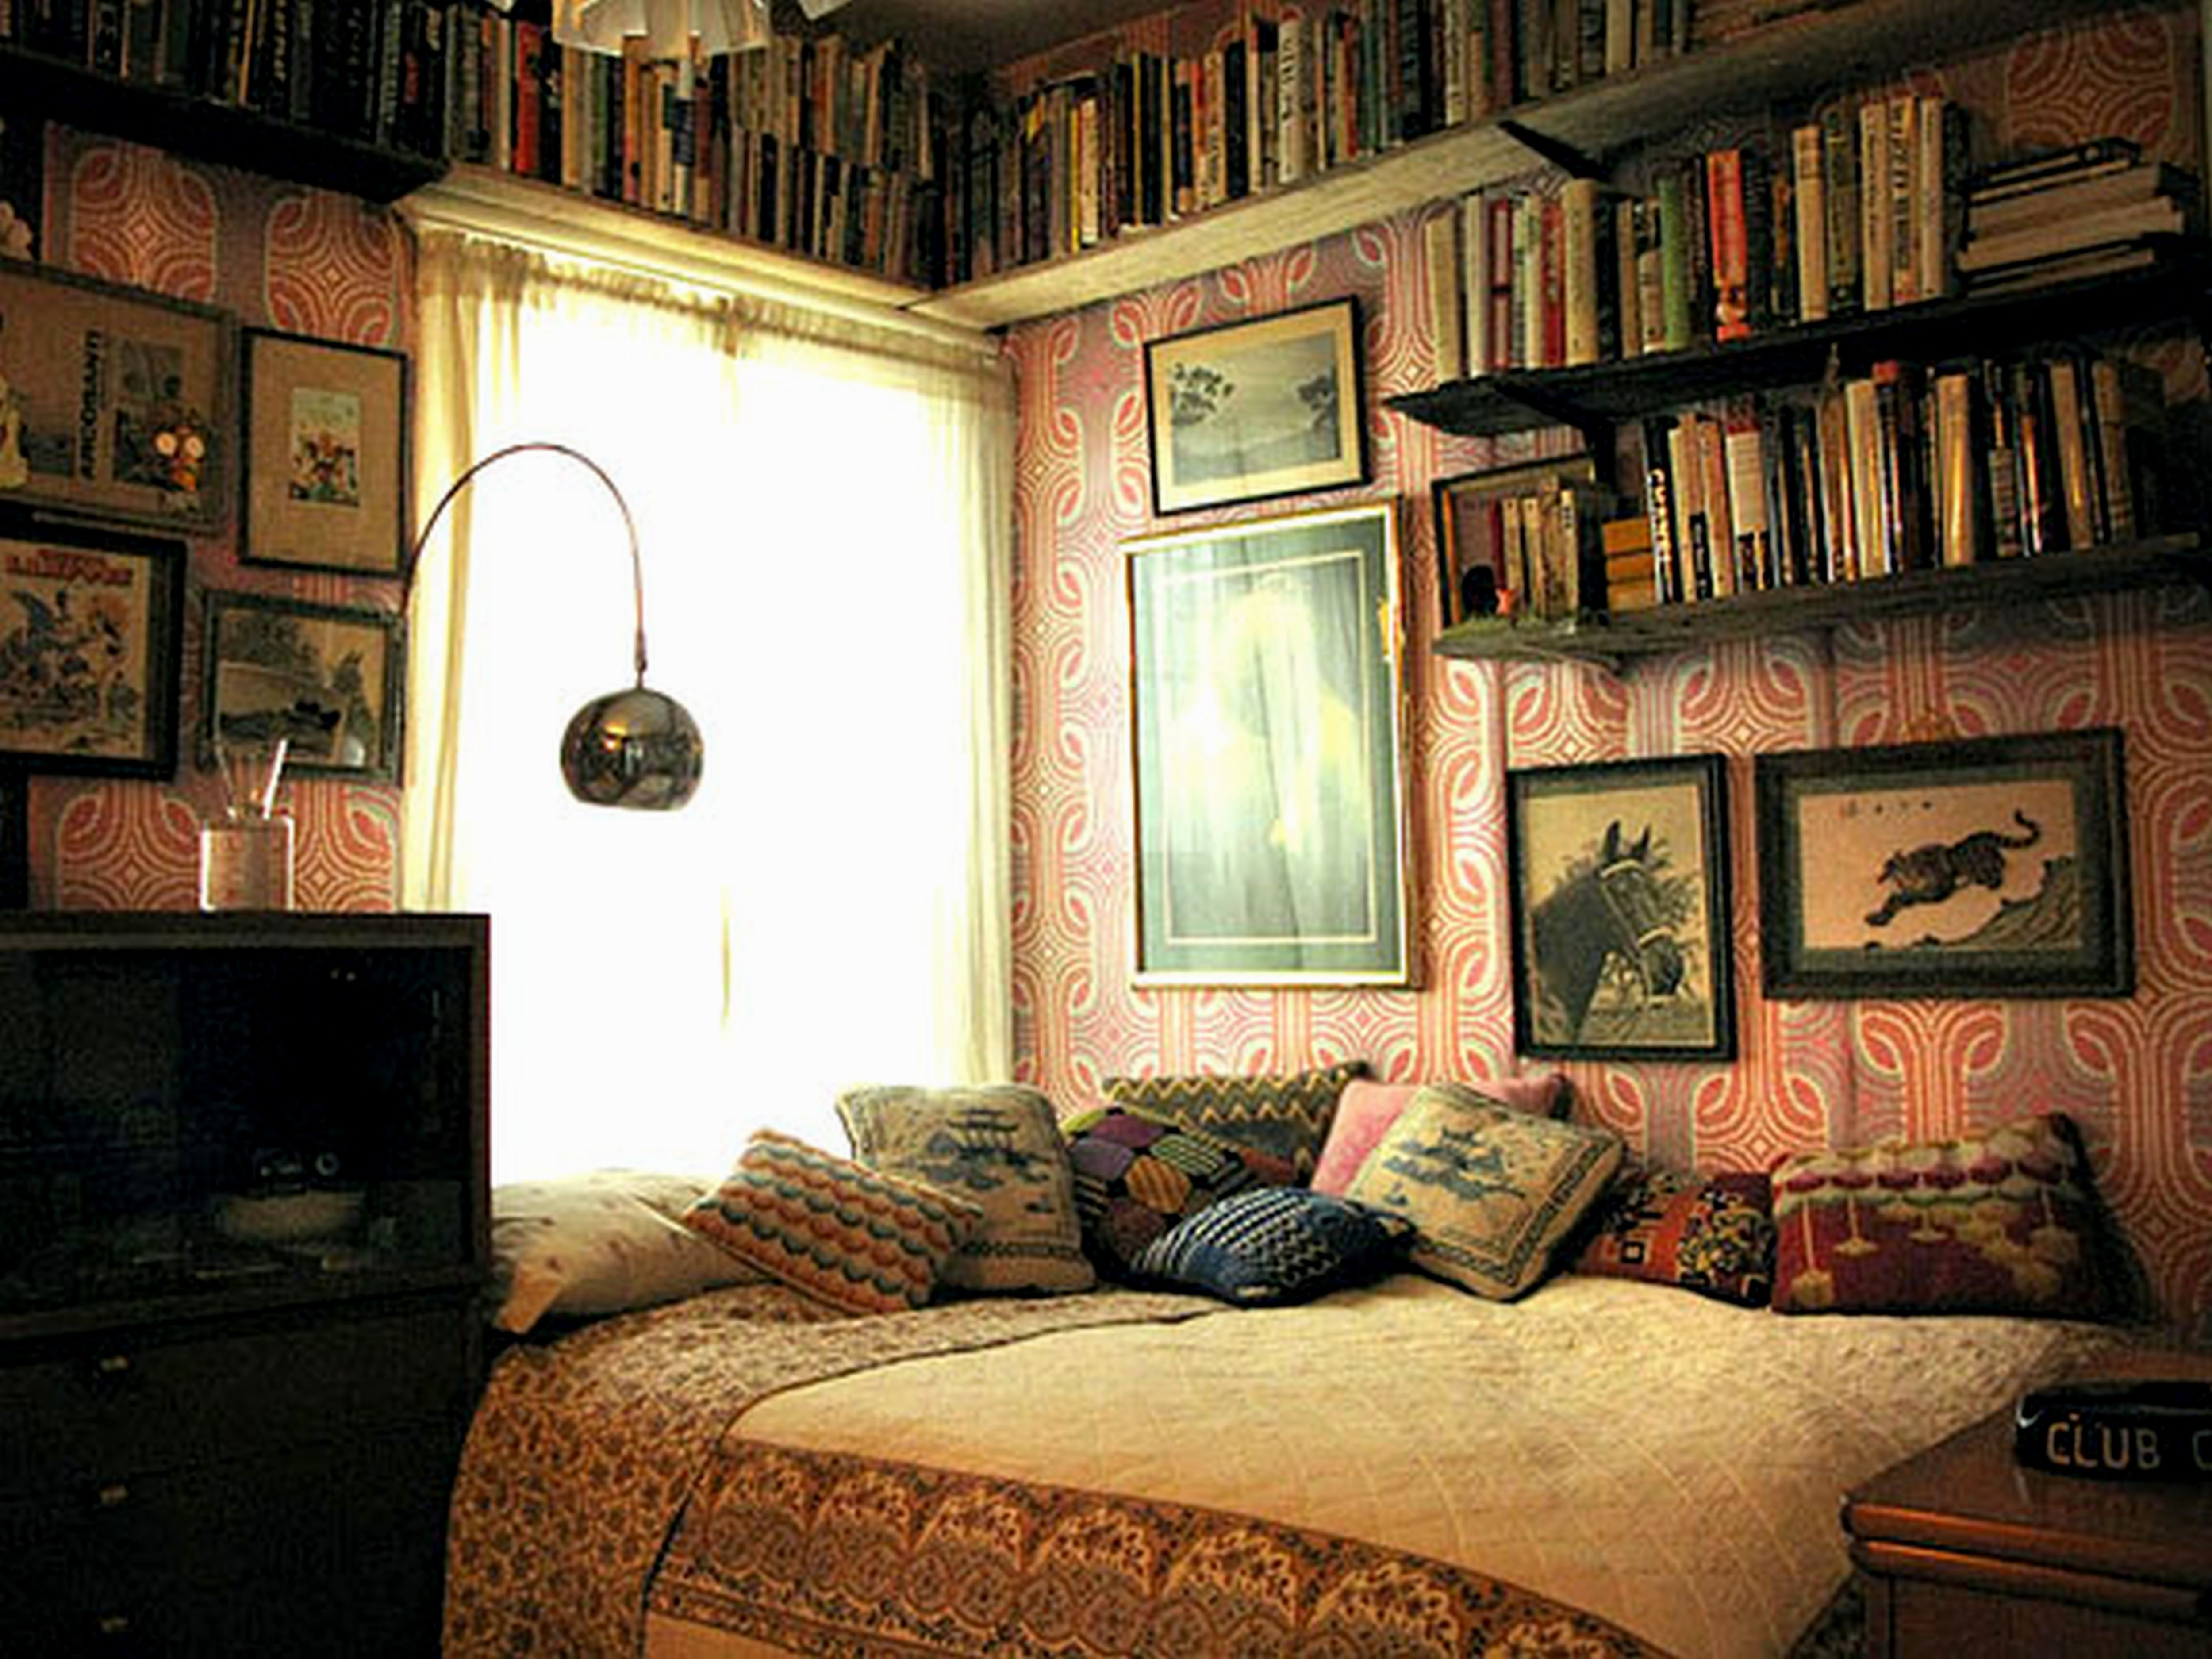 Marvelous Vintage Bedroom Ideas For Small Rooms Part - 13: Vintage Decor For Small Room